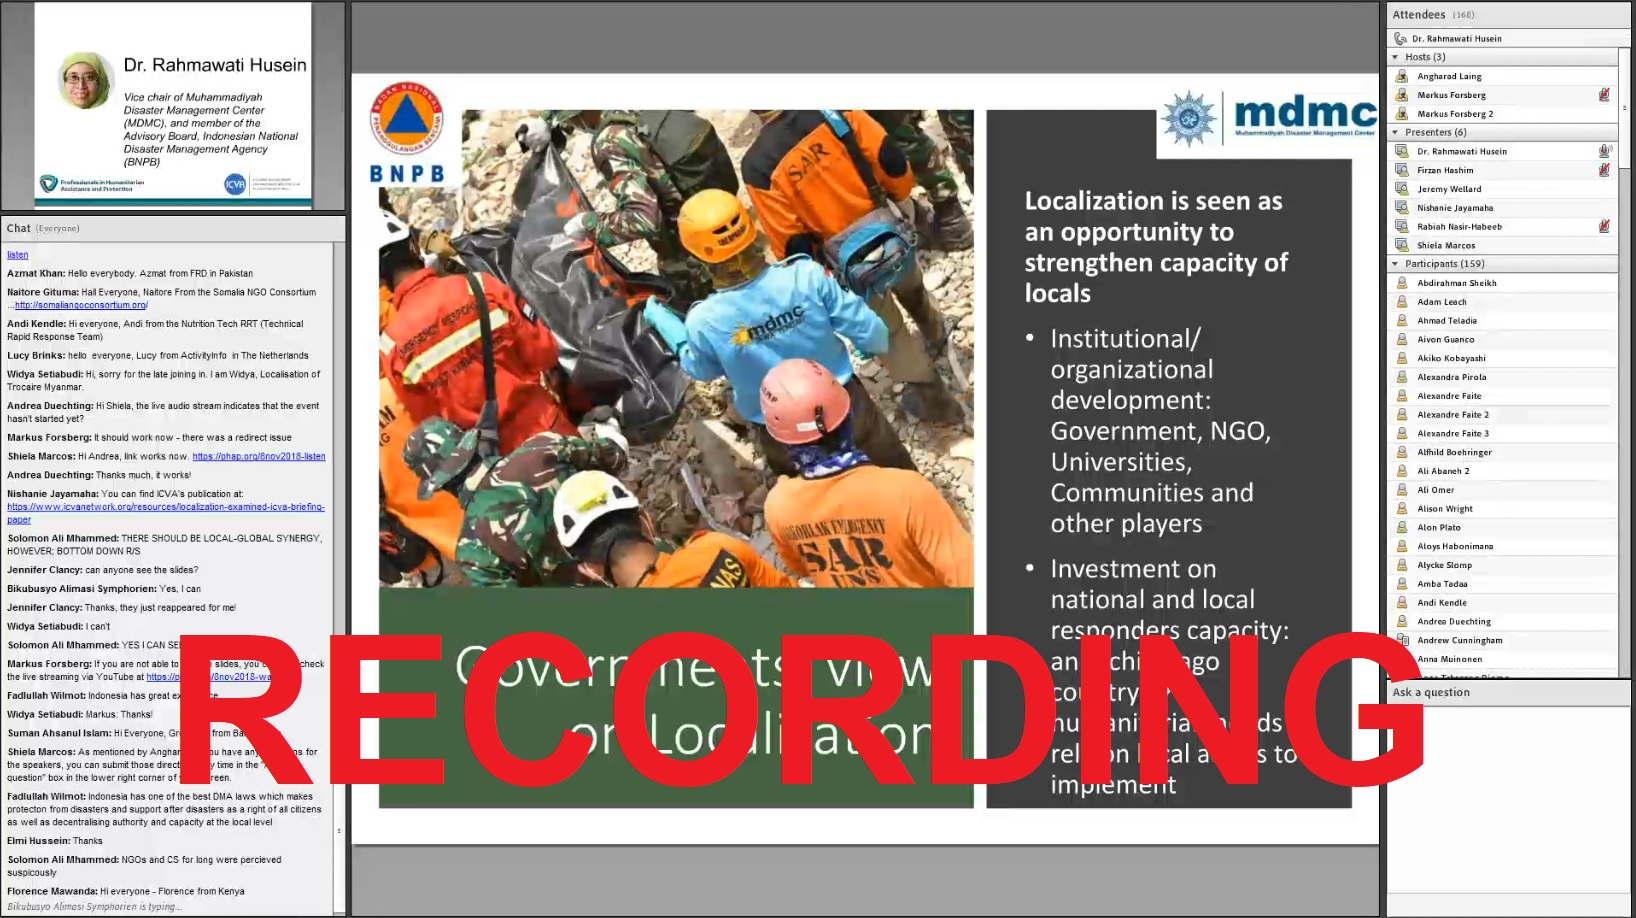 Snapshot of Presentation showing the rescuers in a disaster affected area